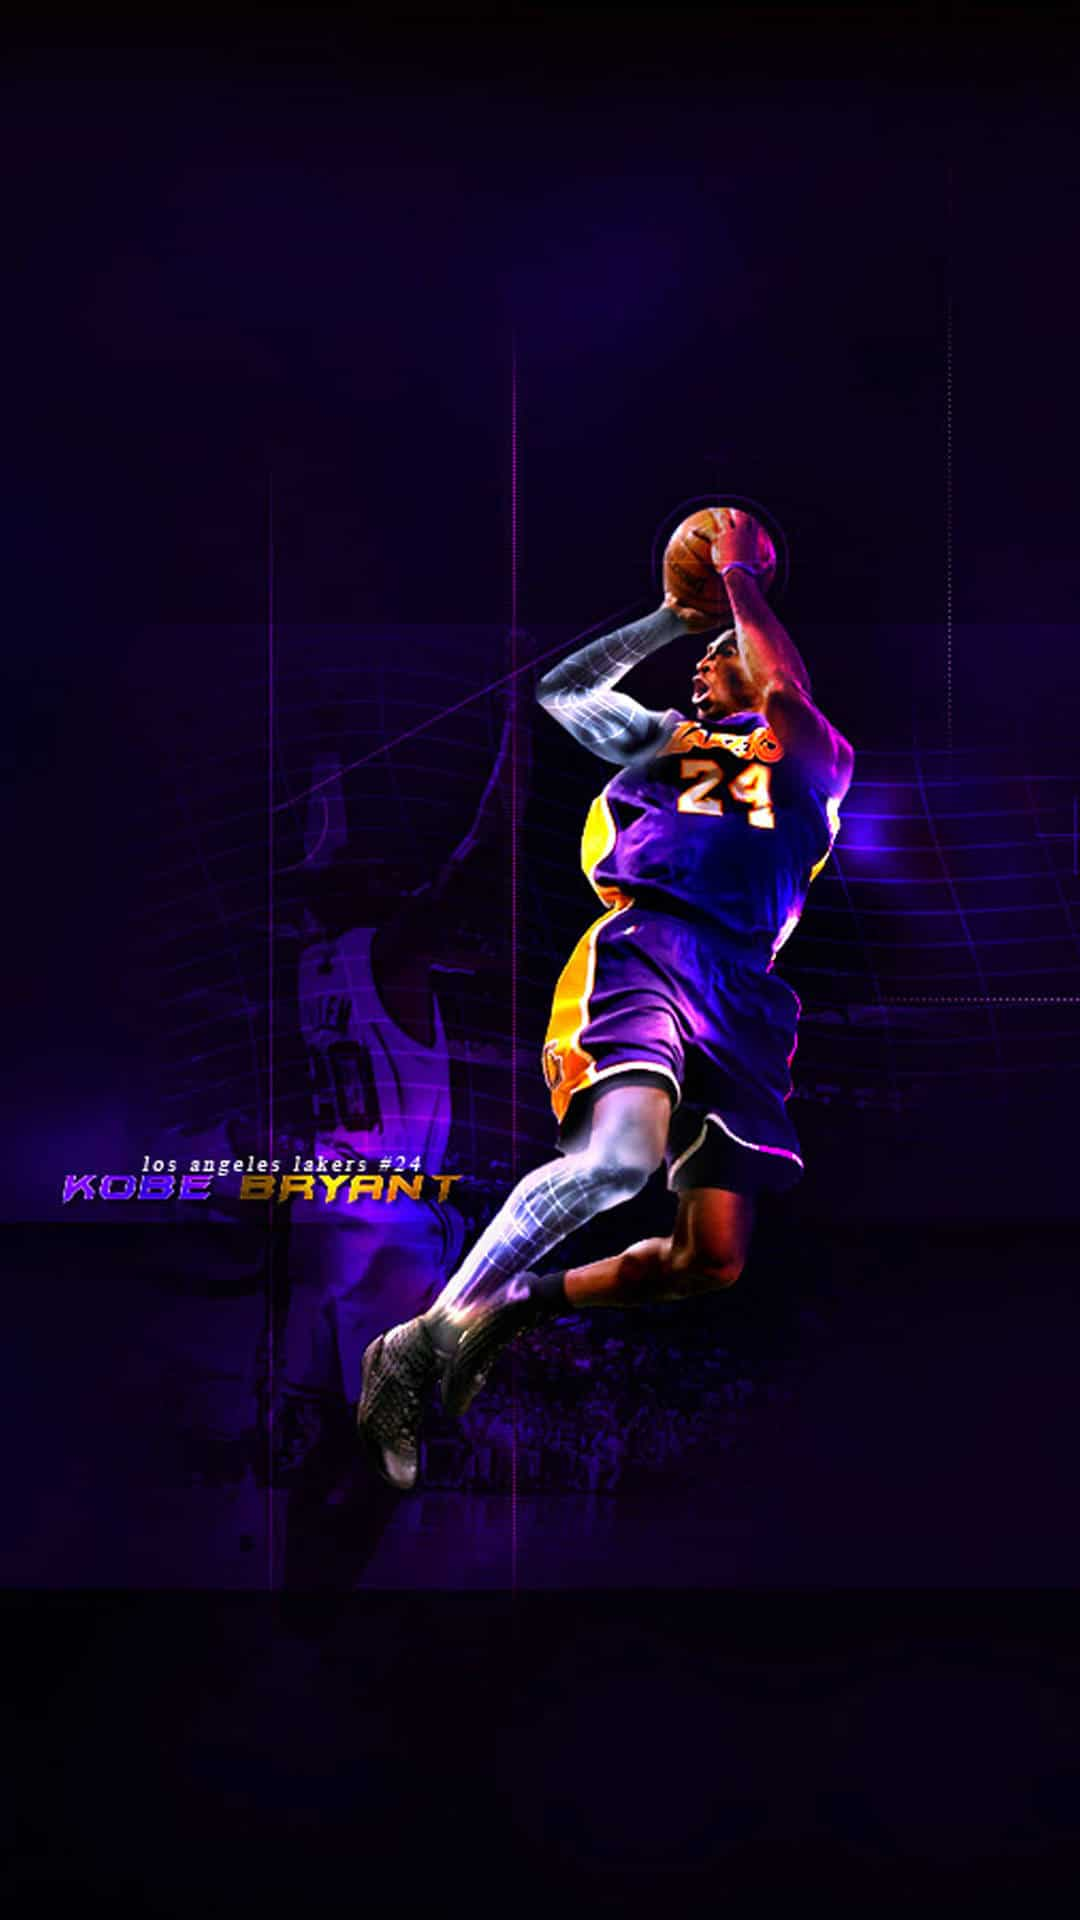 What Is The Best Wallpaper App For Iphone X 30 Kobe Bryant Wallpapers Hd For Iphone 2016 Apple Lives